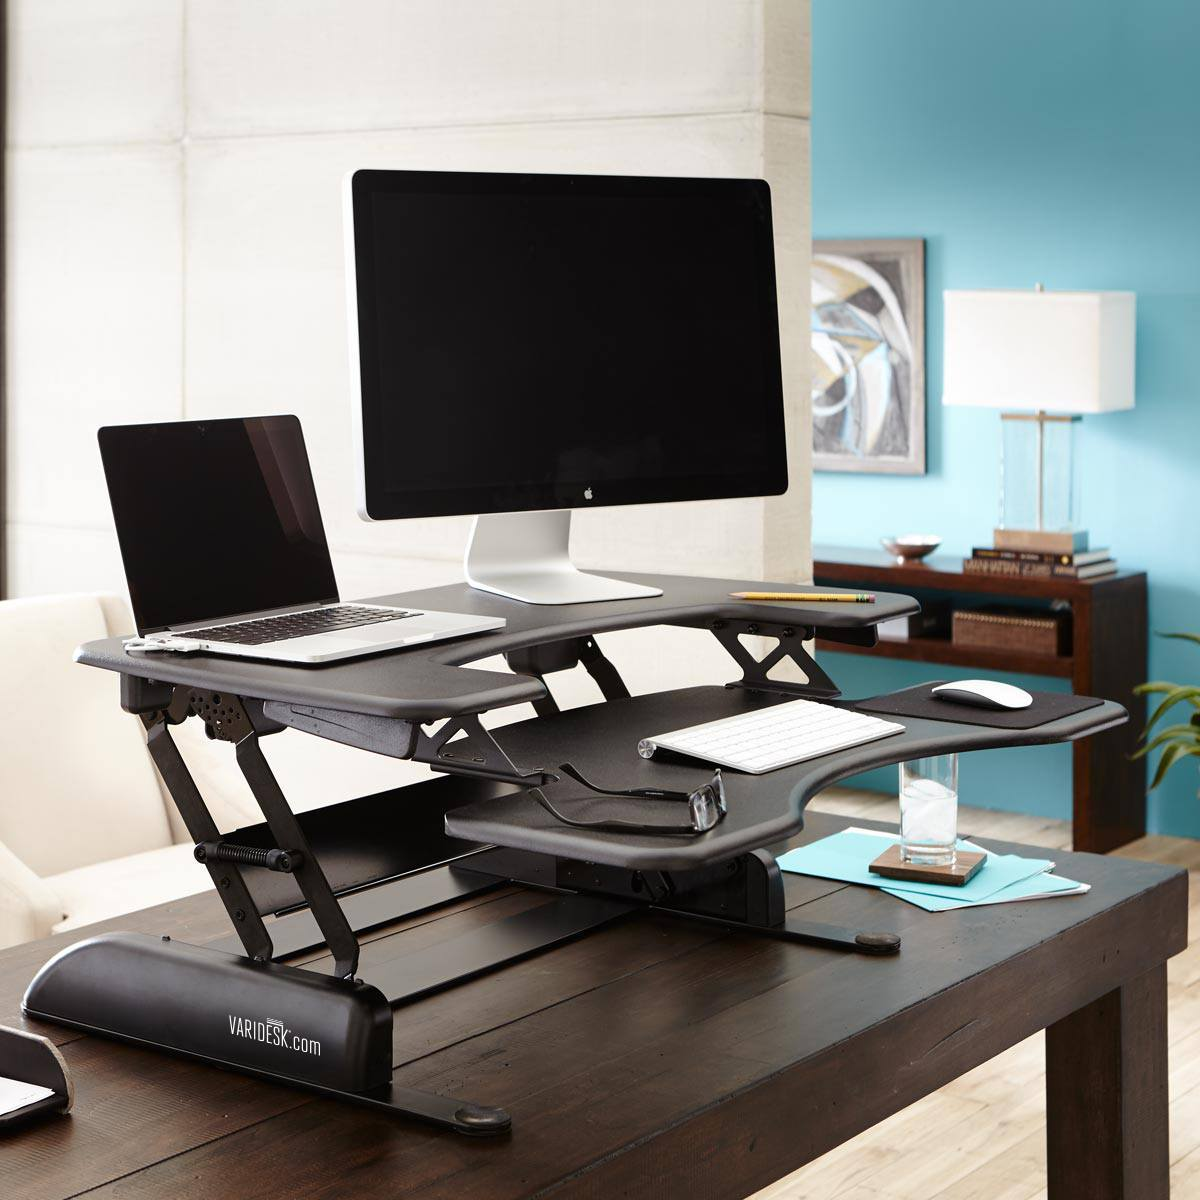 Varidesk - 4 Models Reviewed